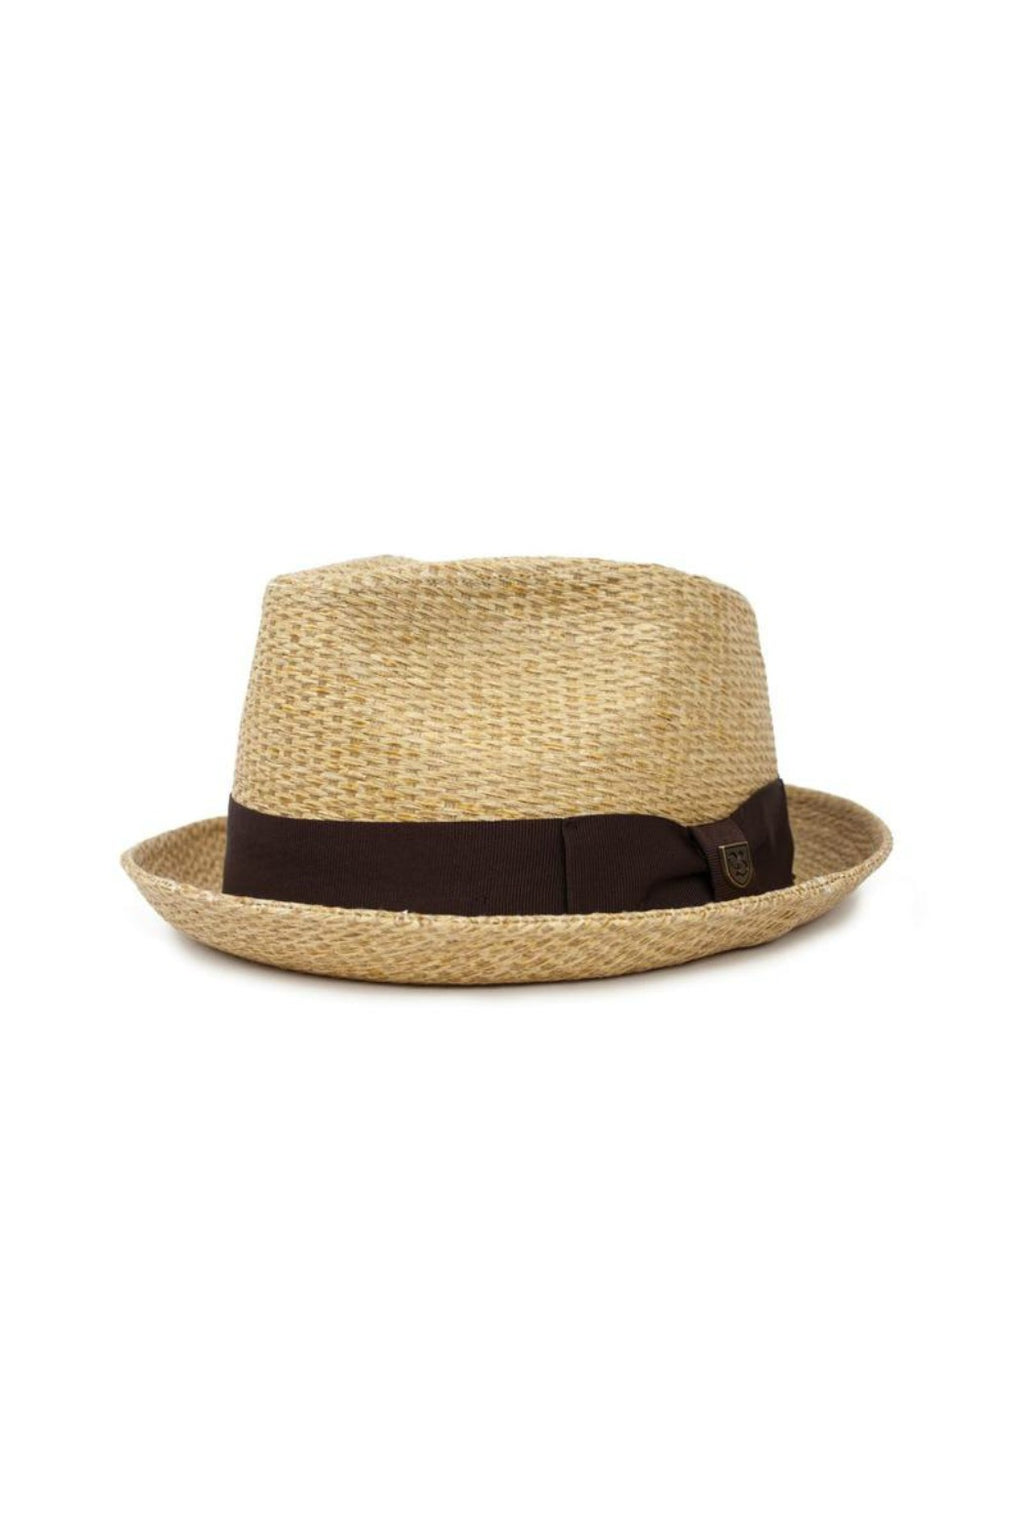 Brixton Castor Fedora in Tan Straw